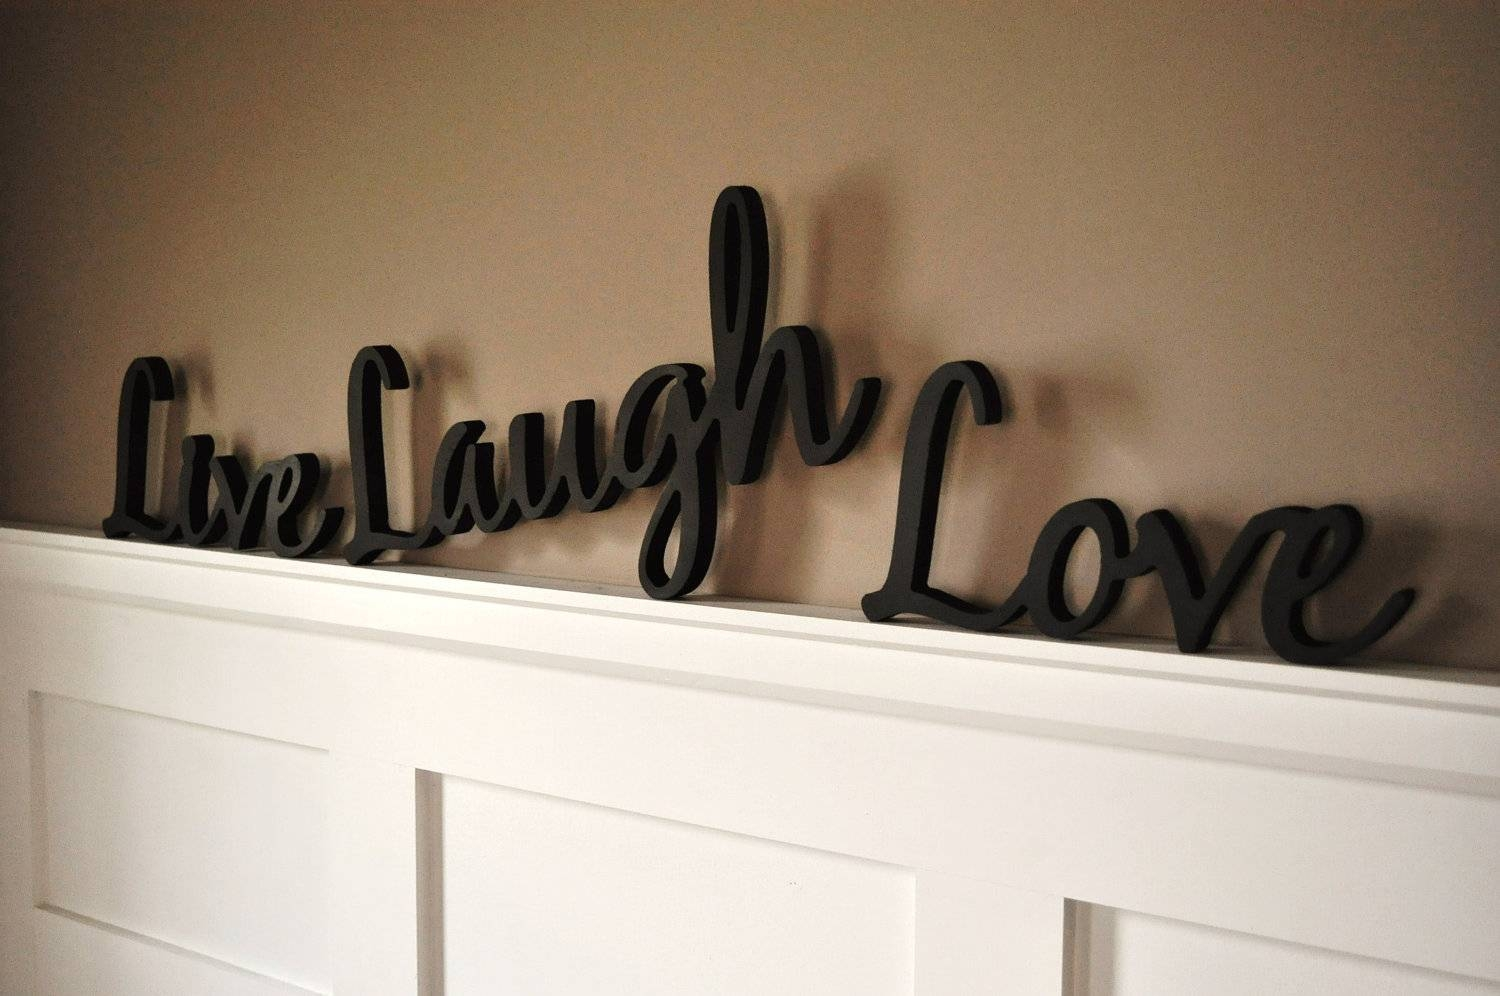 Wooden Word Decorations For Walls – Home Ideas Designs With Regard To Most Recent Wooden Words Wall Art (Gallery 5 of 30)